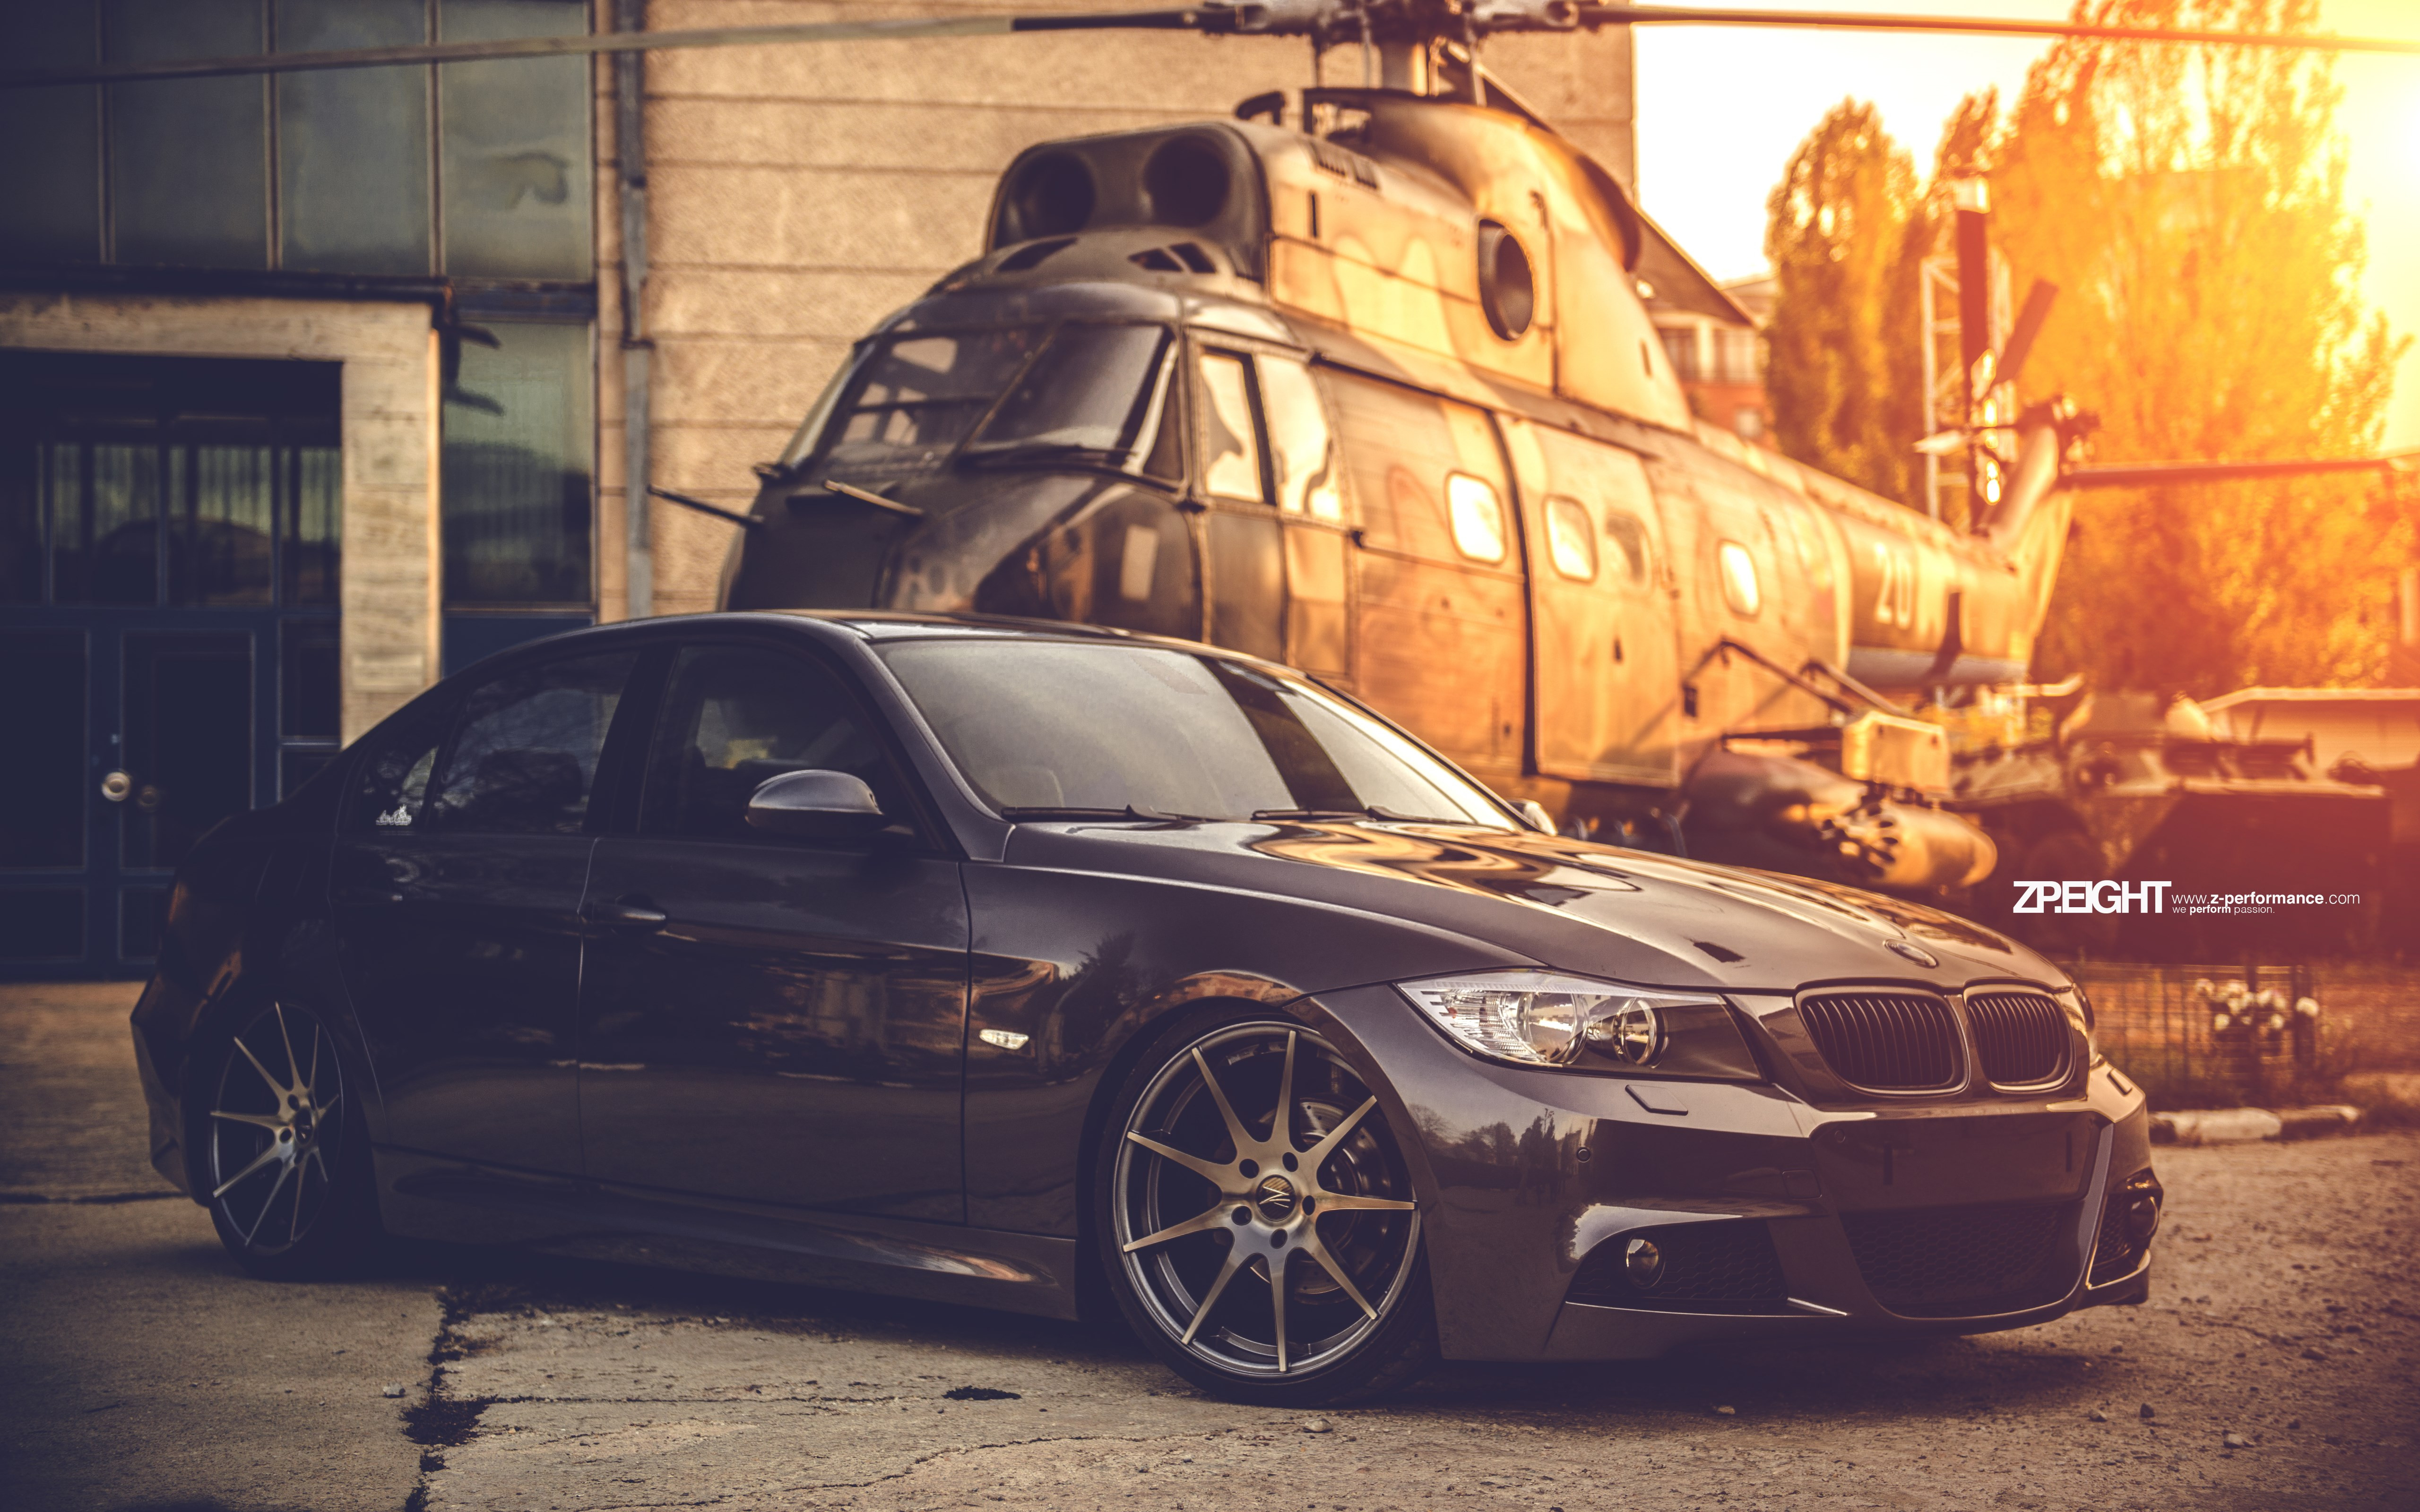 BMW E90 and one helicopter wallpaper 5120x3200